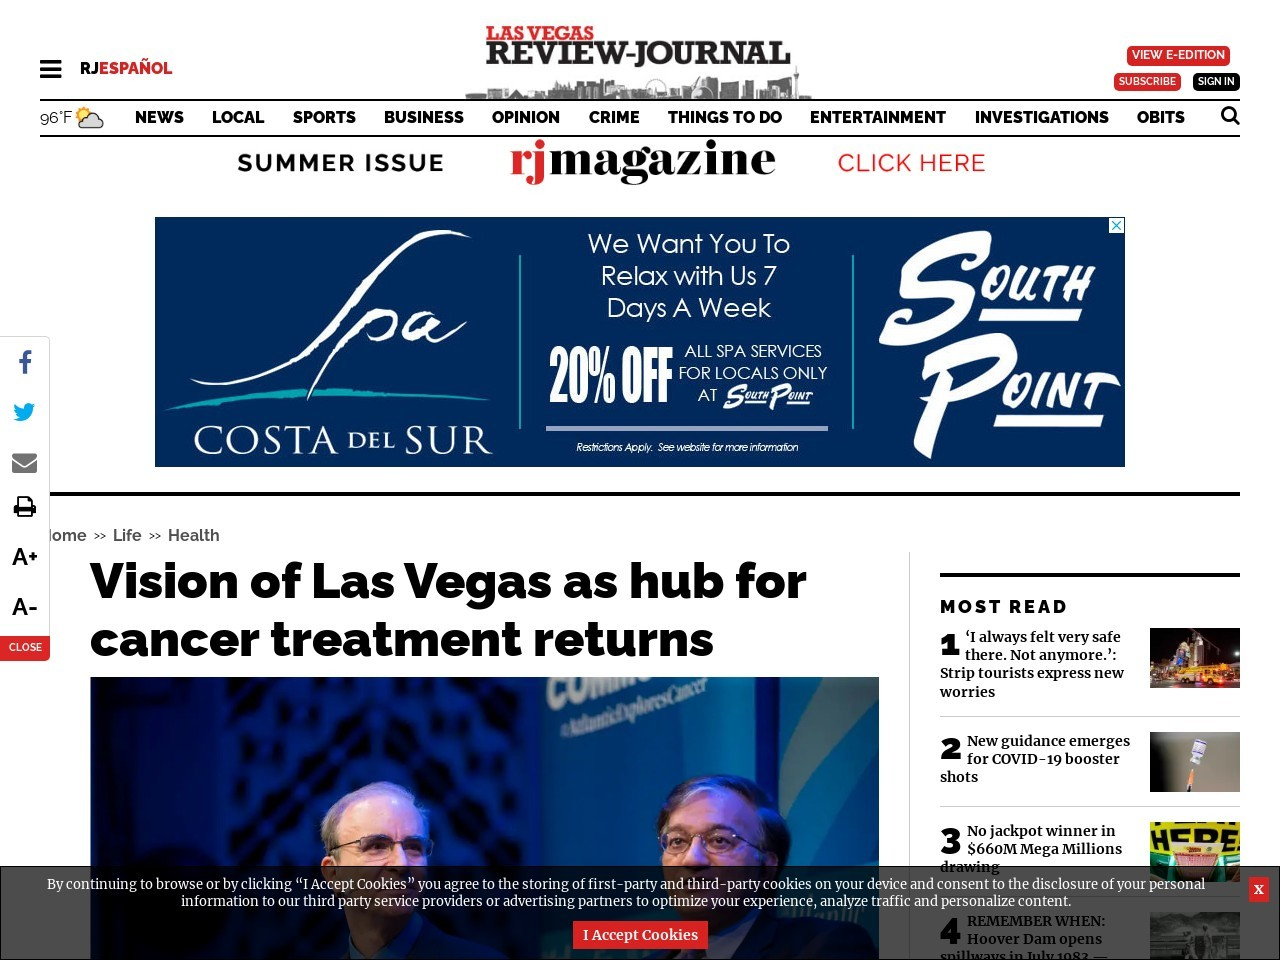 Vision of Las Vegas as hub for cancer treatment returns